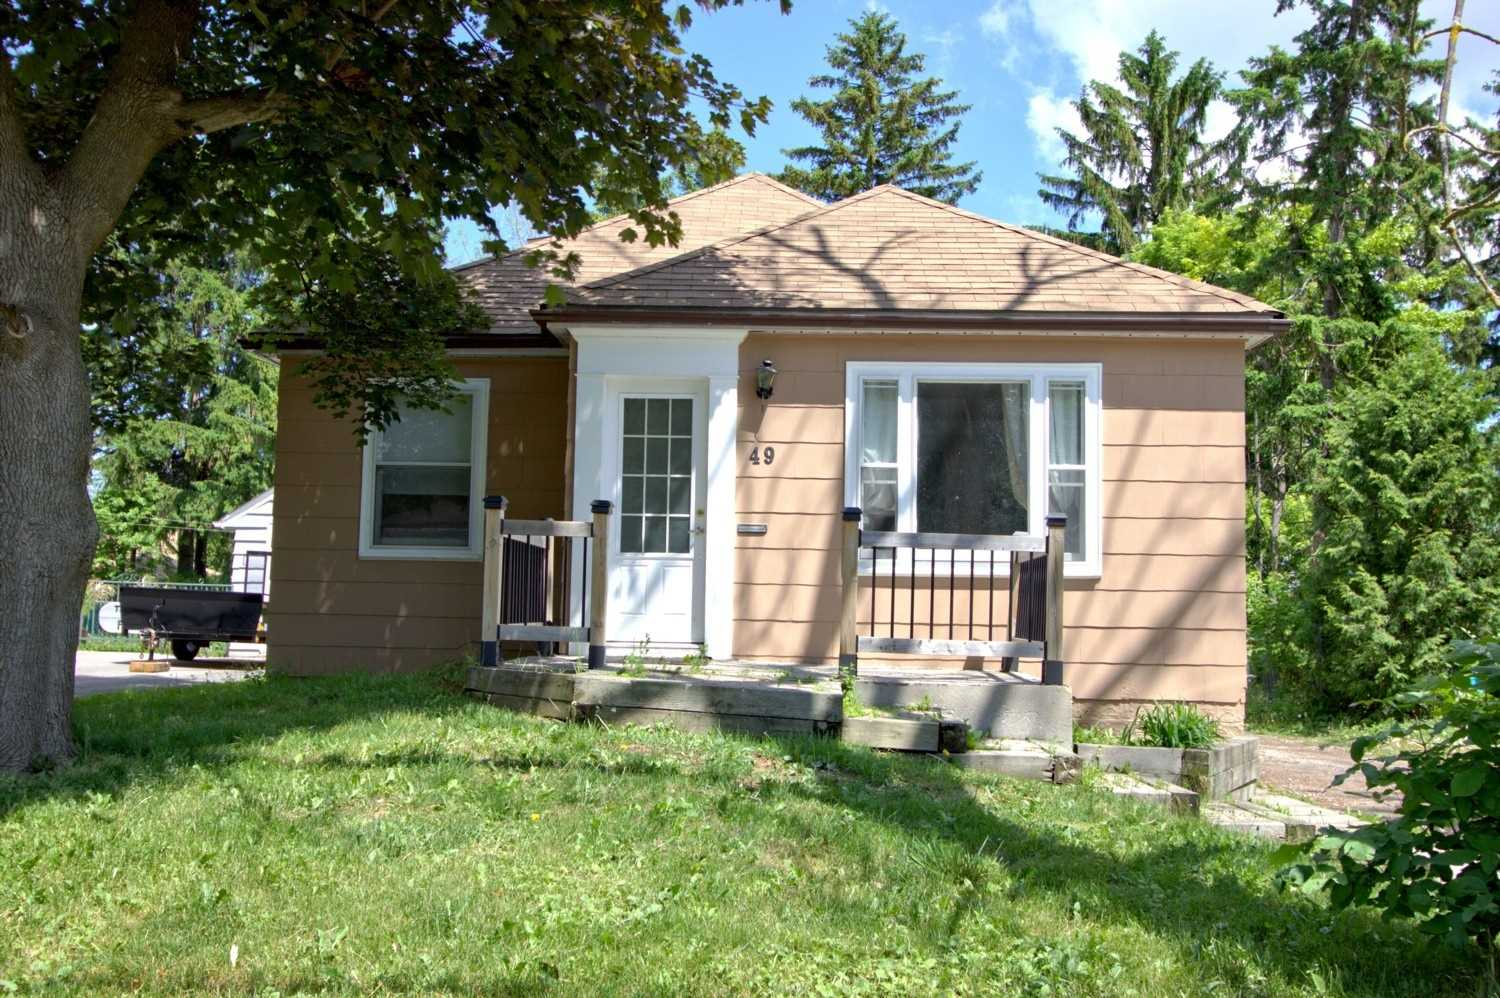 Detached house For Sale In Richmond Hill - 49 Hunt Ave, Richmond Hill, Ontario, Canada L4C 4H1 , 3 Bedrooms Bedrooms, ,2 BathroomsBathrooms,Detached,For Sale,Hunt